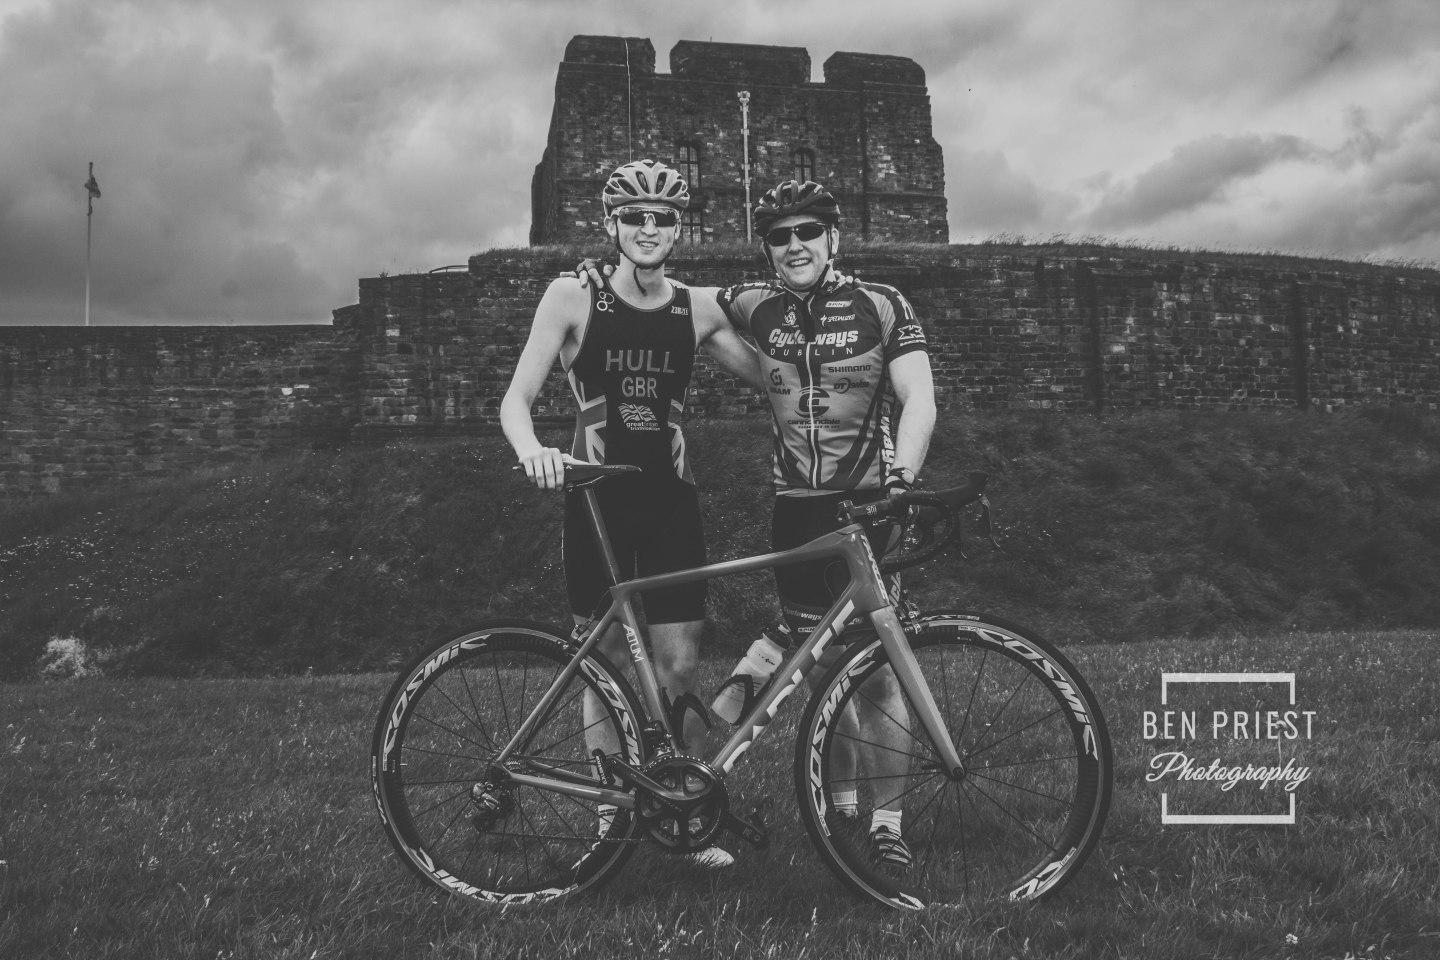 Team GB Triathlete – Jordan Hull – Cumbrian Ambassador for the World Health Innovation Summit, with Gareth Presch no.8